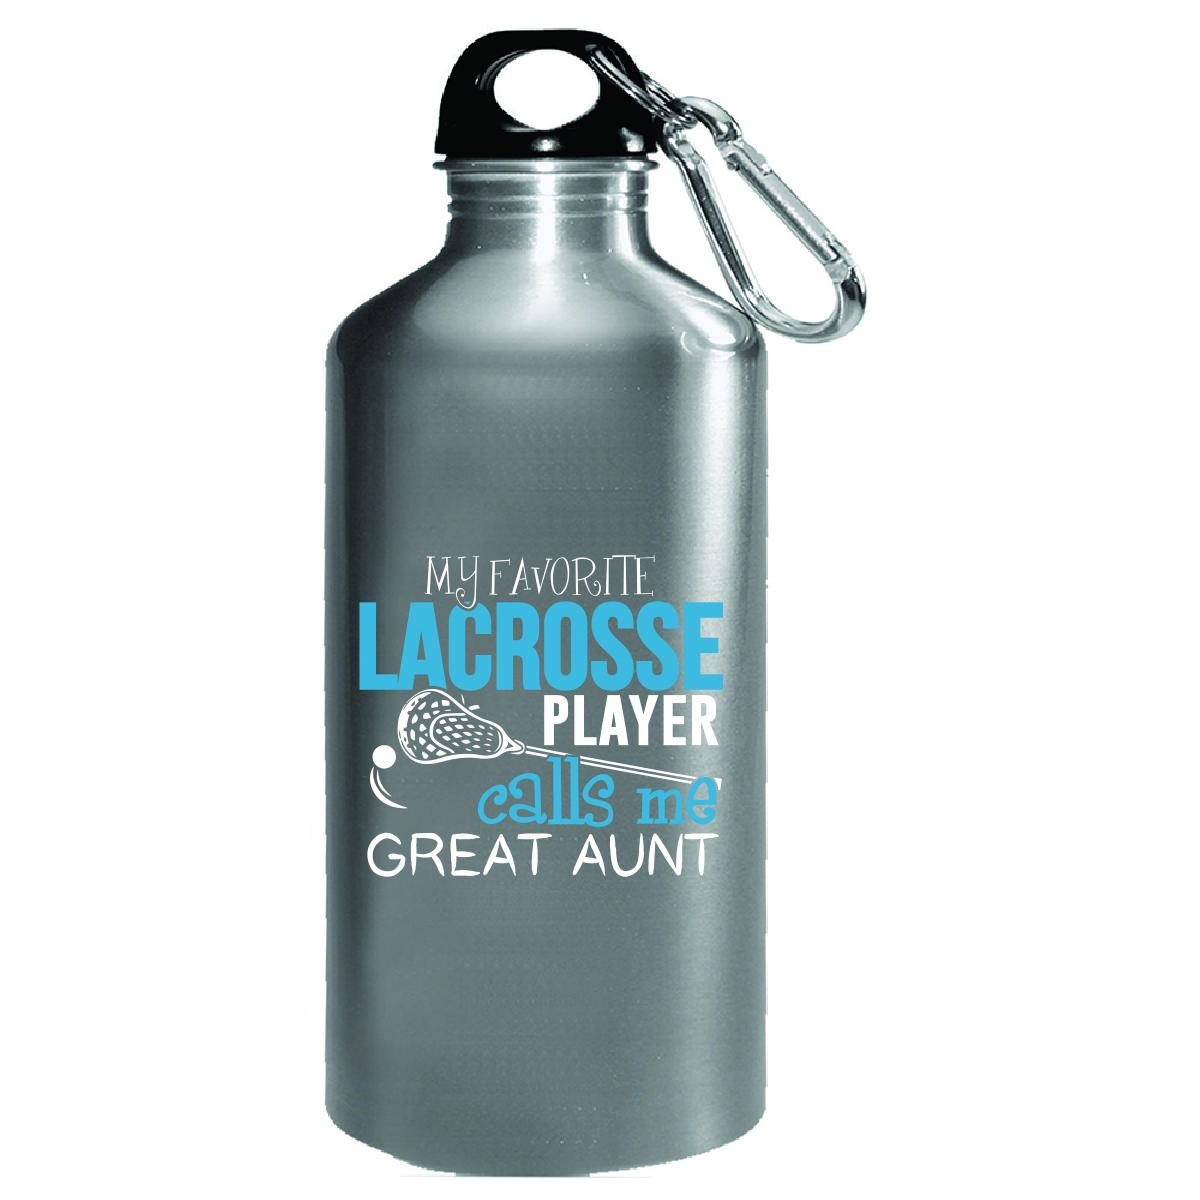 My Favorite Lacrosse Player Calls Me Great Aunt - Water Bottle